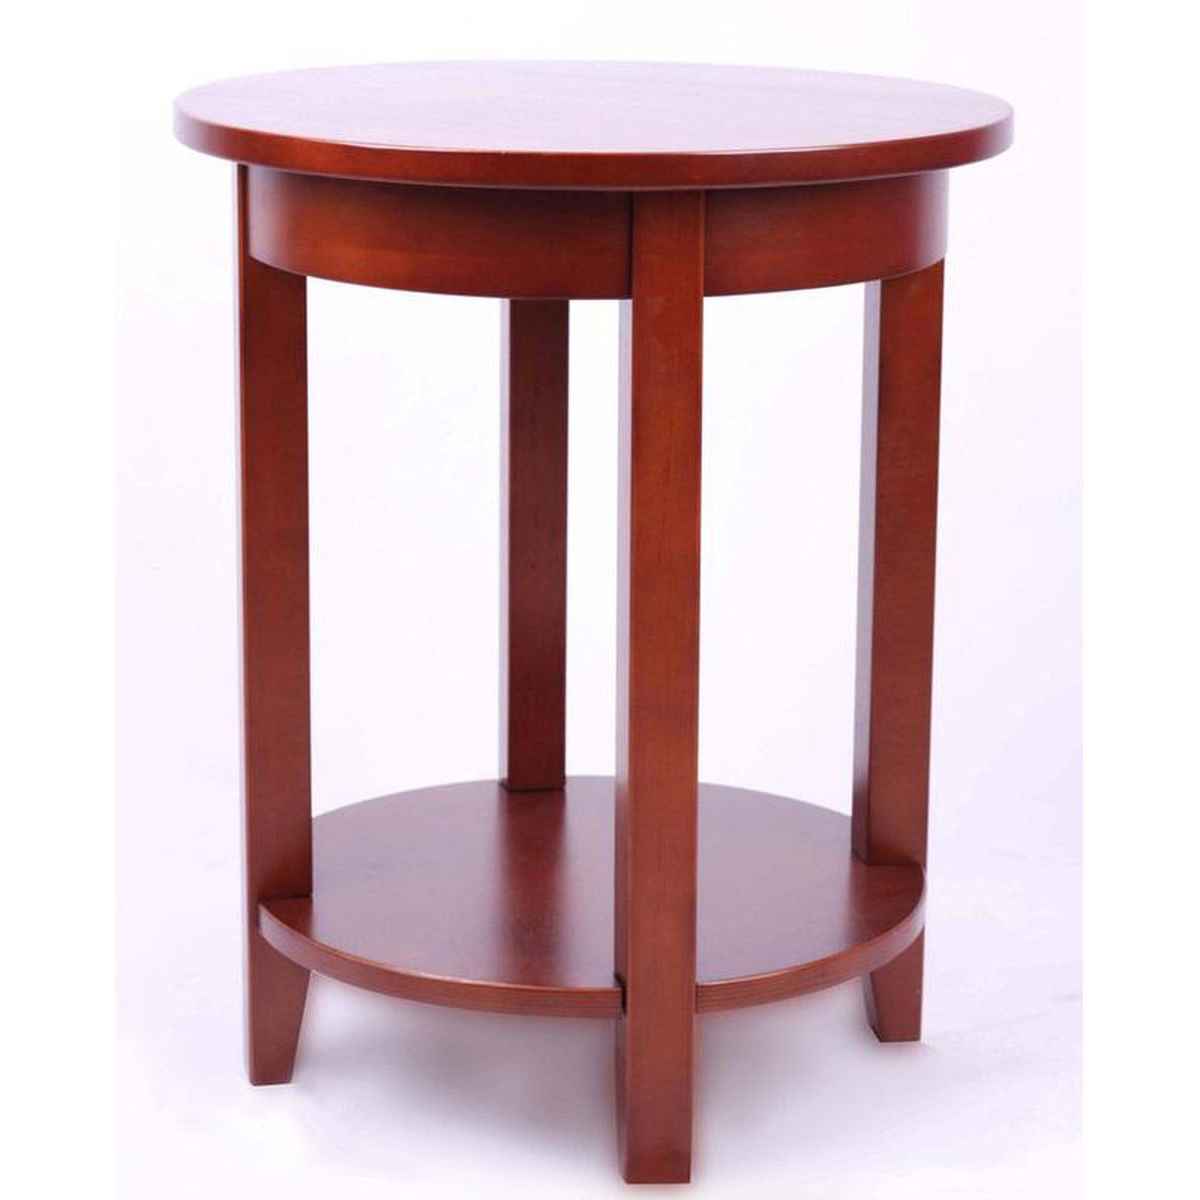 cherry round accent table bizchair bolton furniture bol main with drawer and shelf our shaker cottage wooden diameter storage ikea kitchen boxes mirror side small garden cover